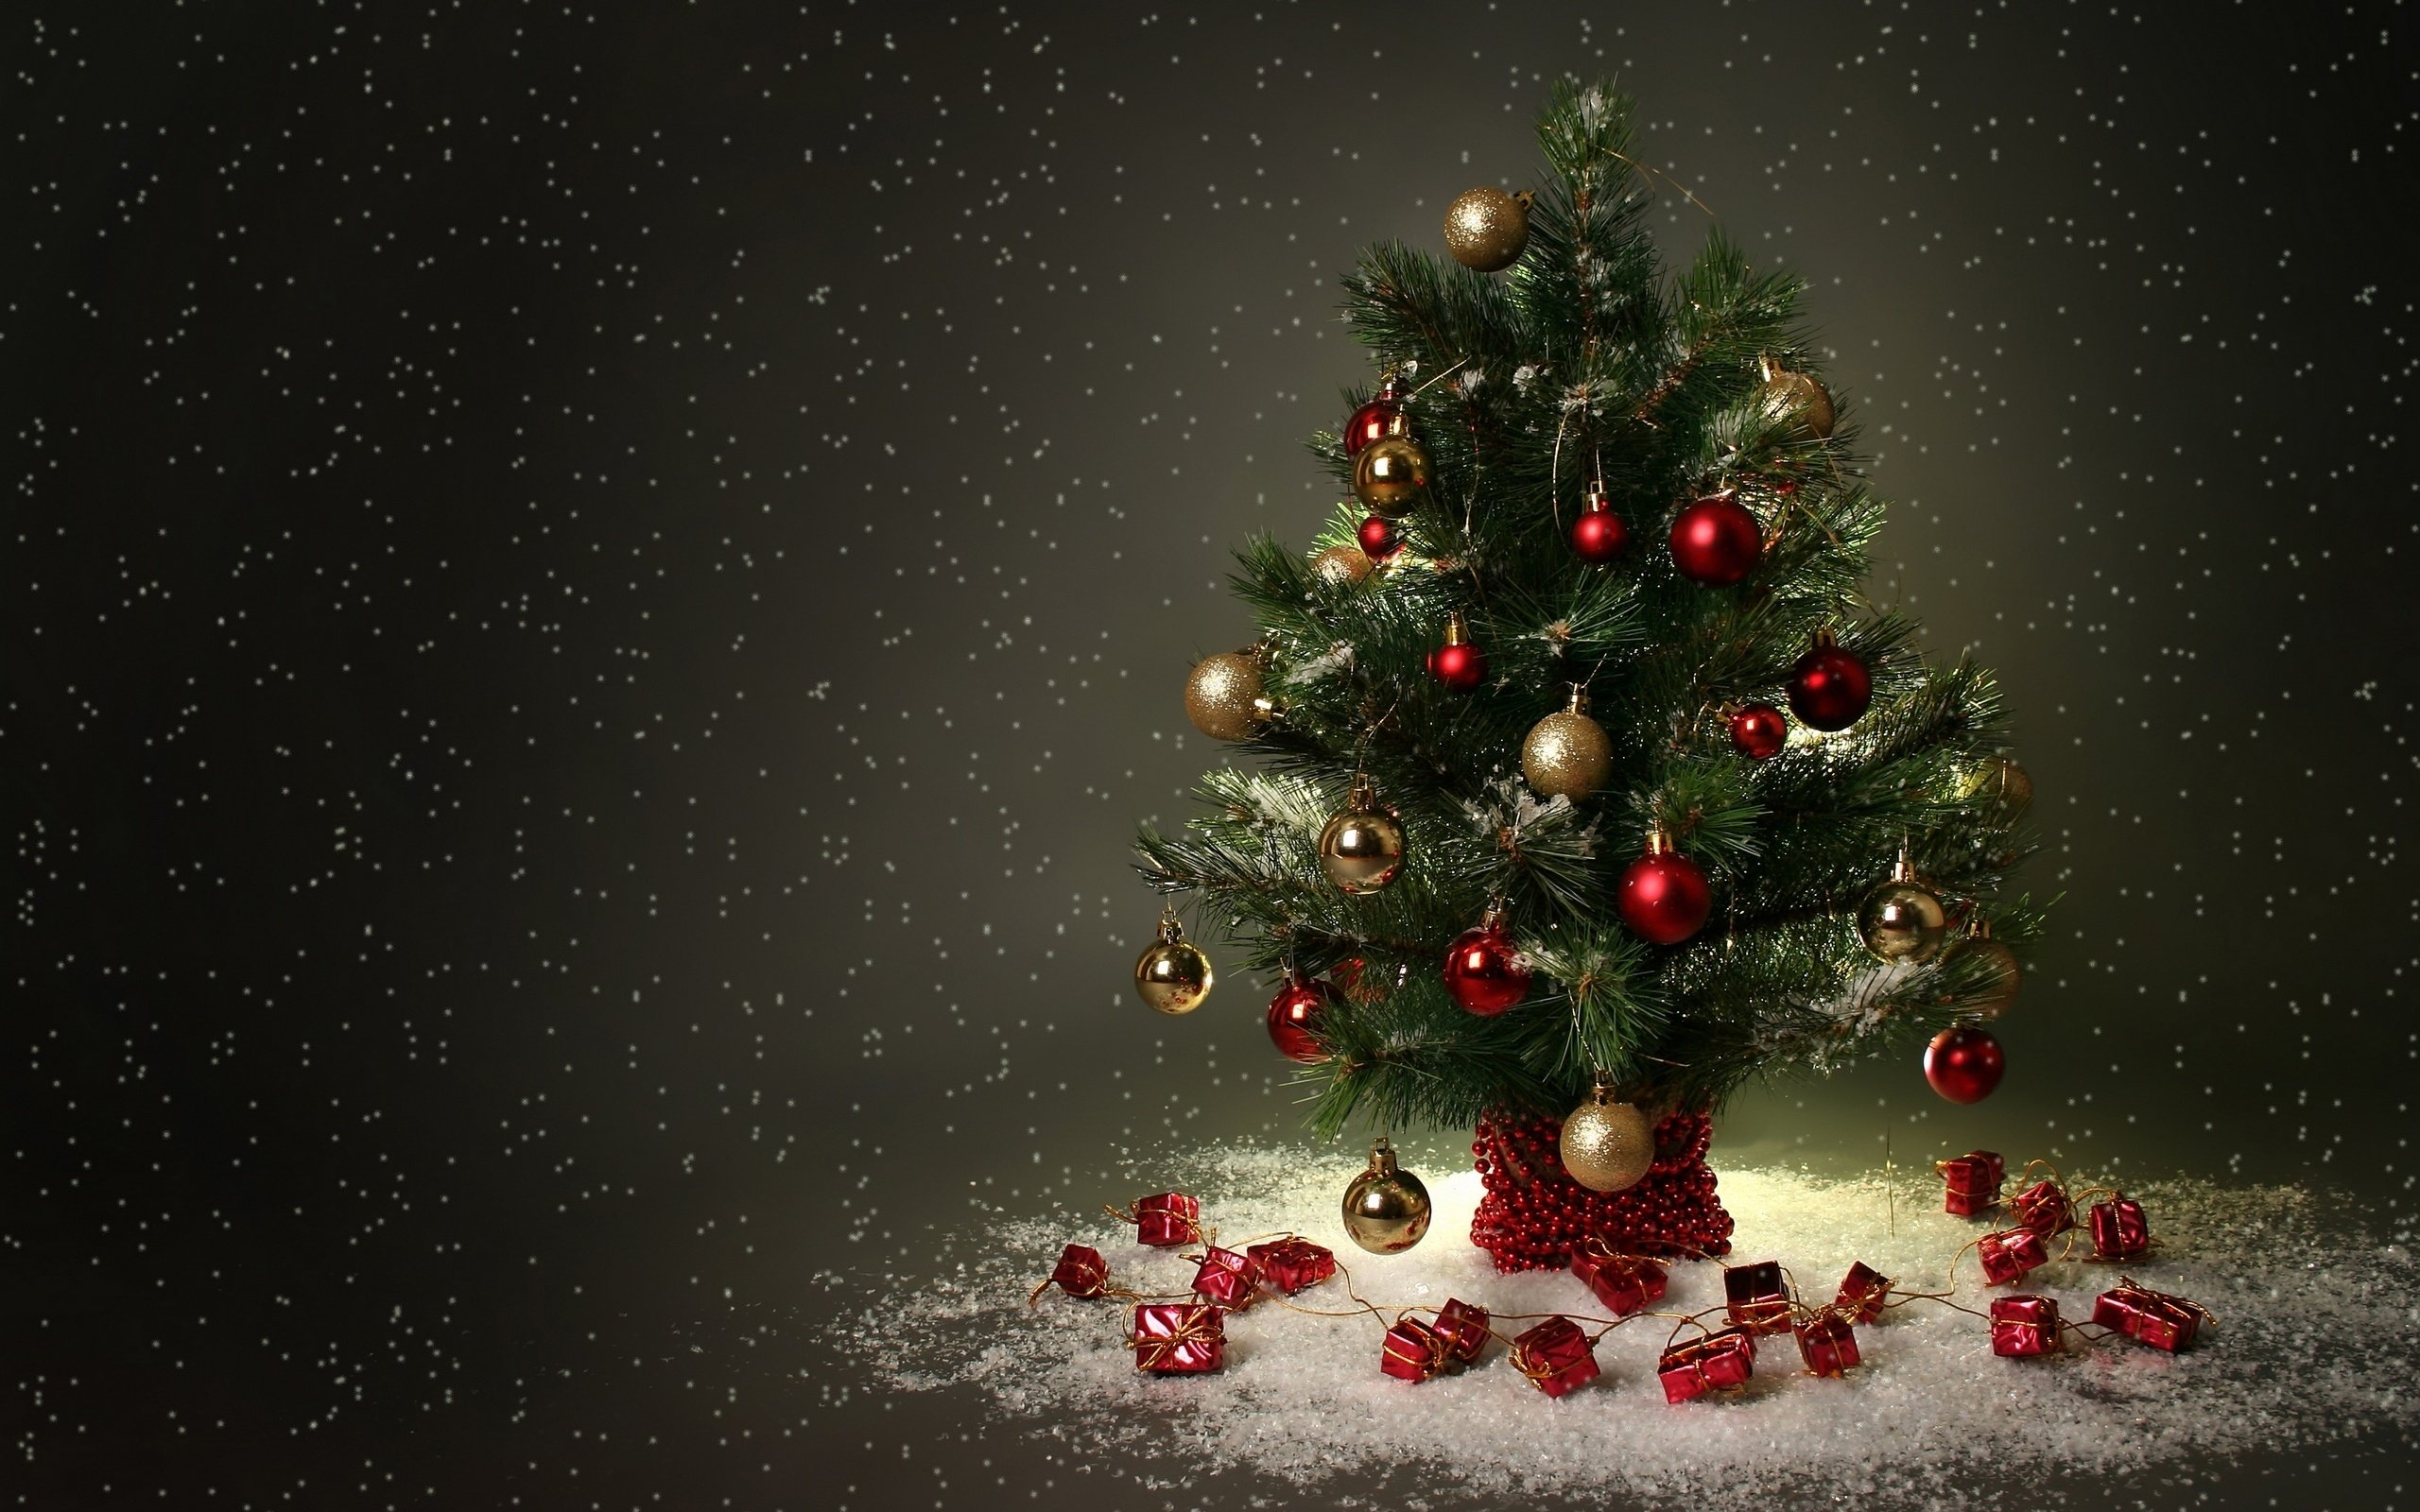 Christmas Background Hd Images.Best Christmas Background Id 436049 For High Resolution Hd